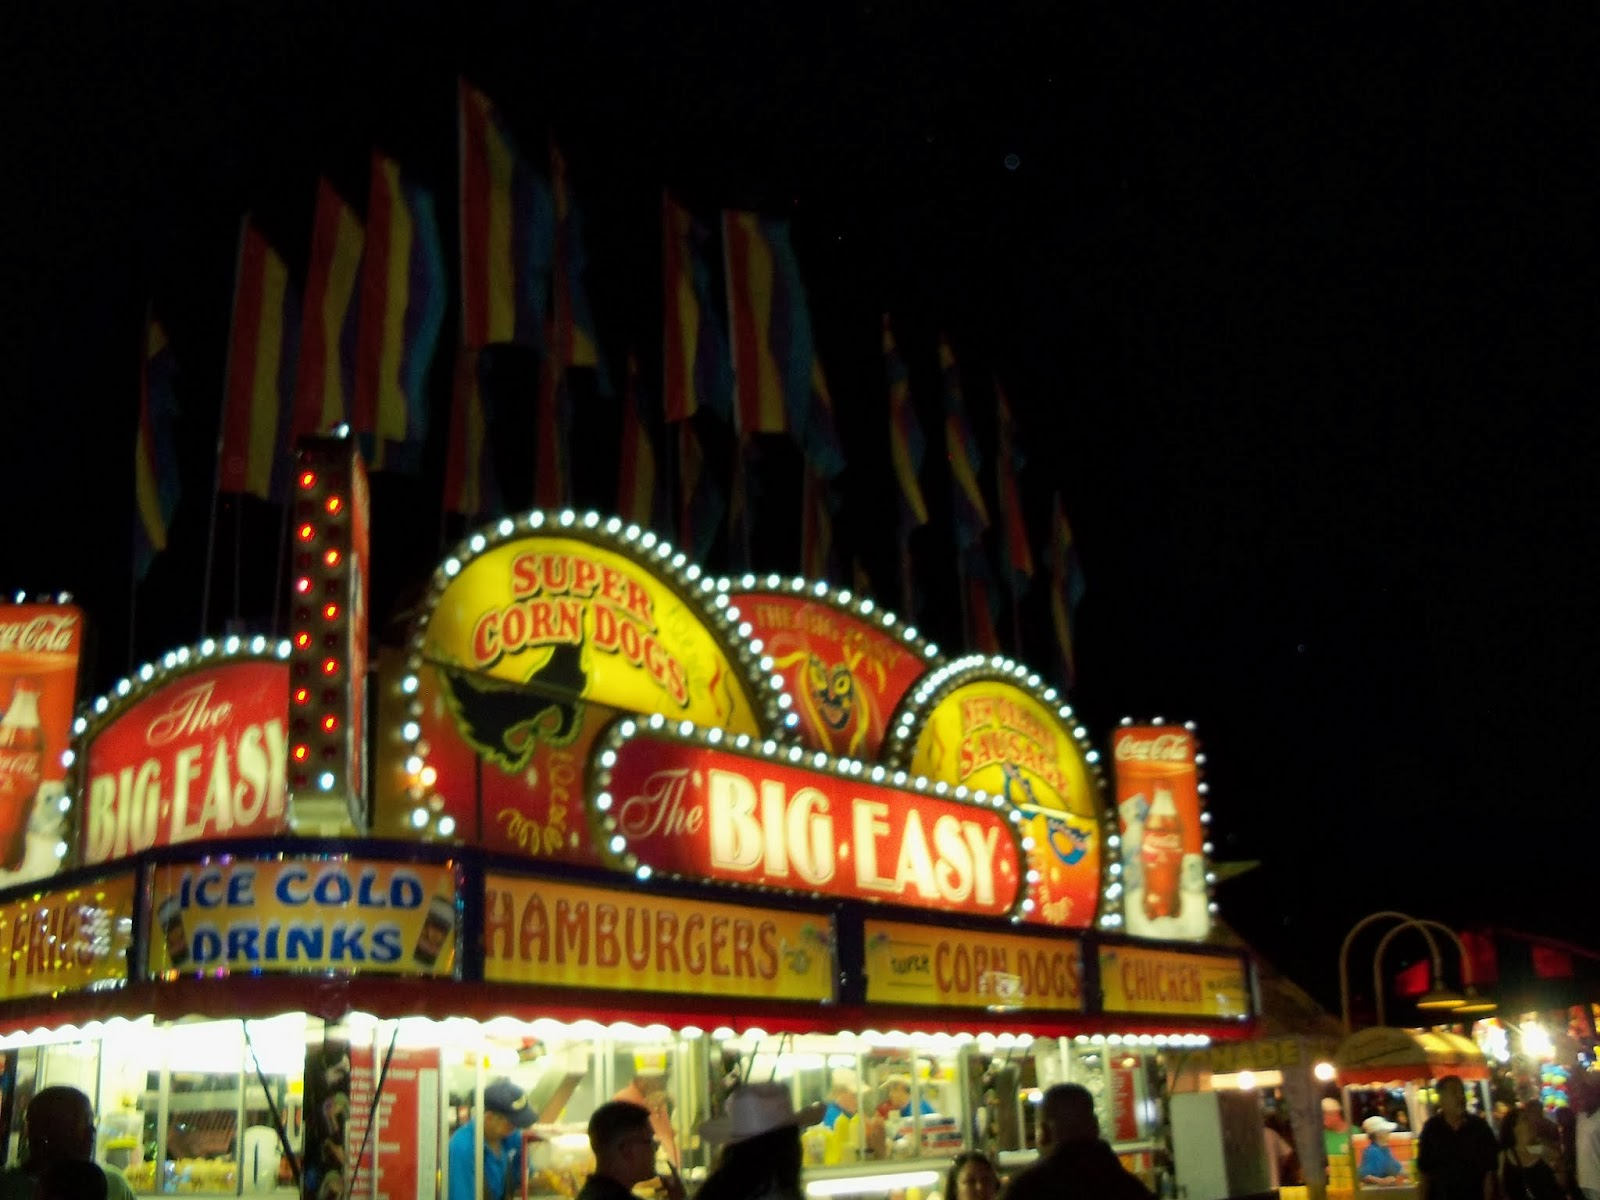 Fort Bend County Fair 2013 - 115_8018.JPG